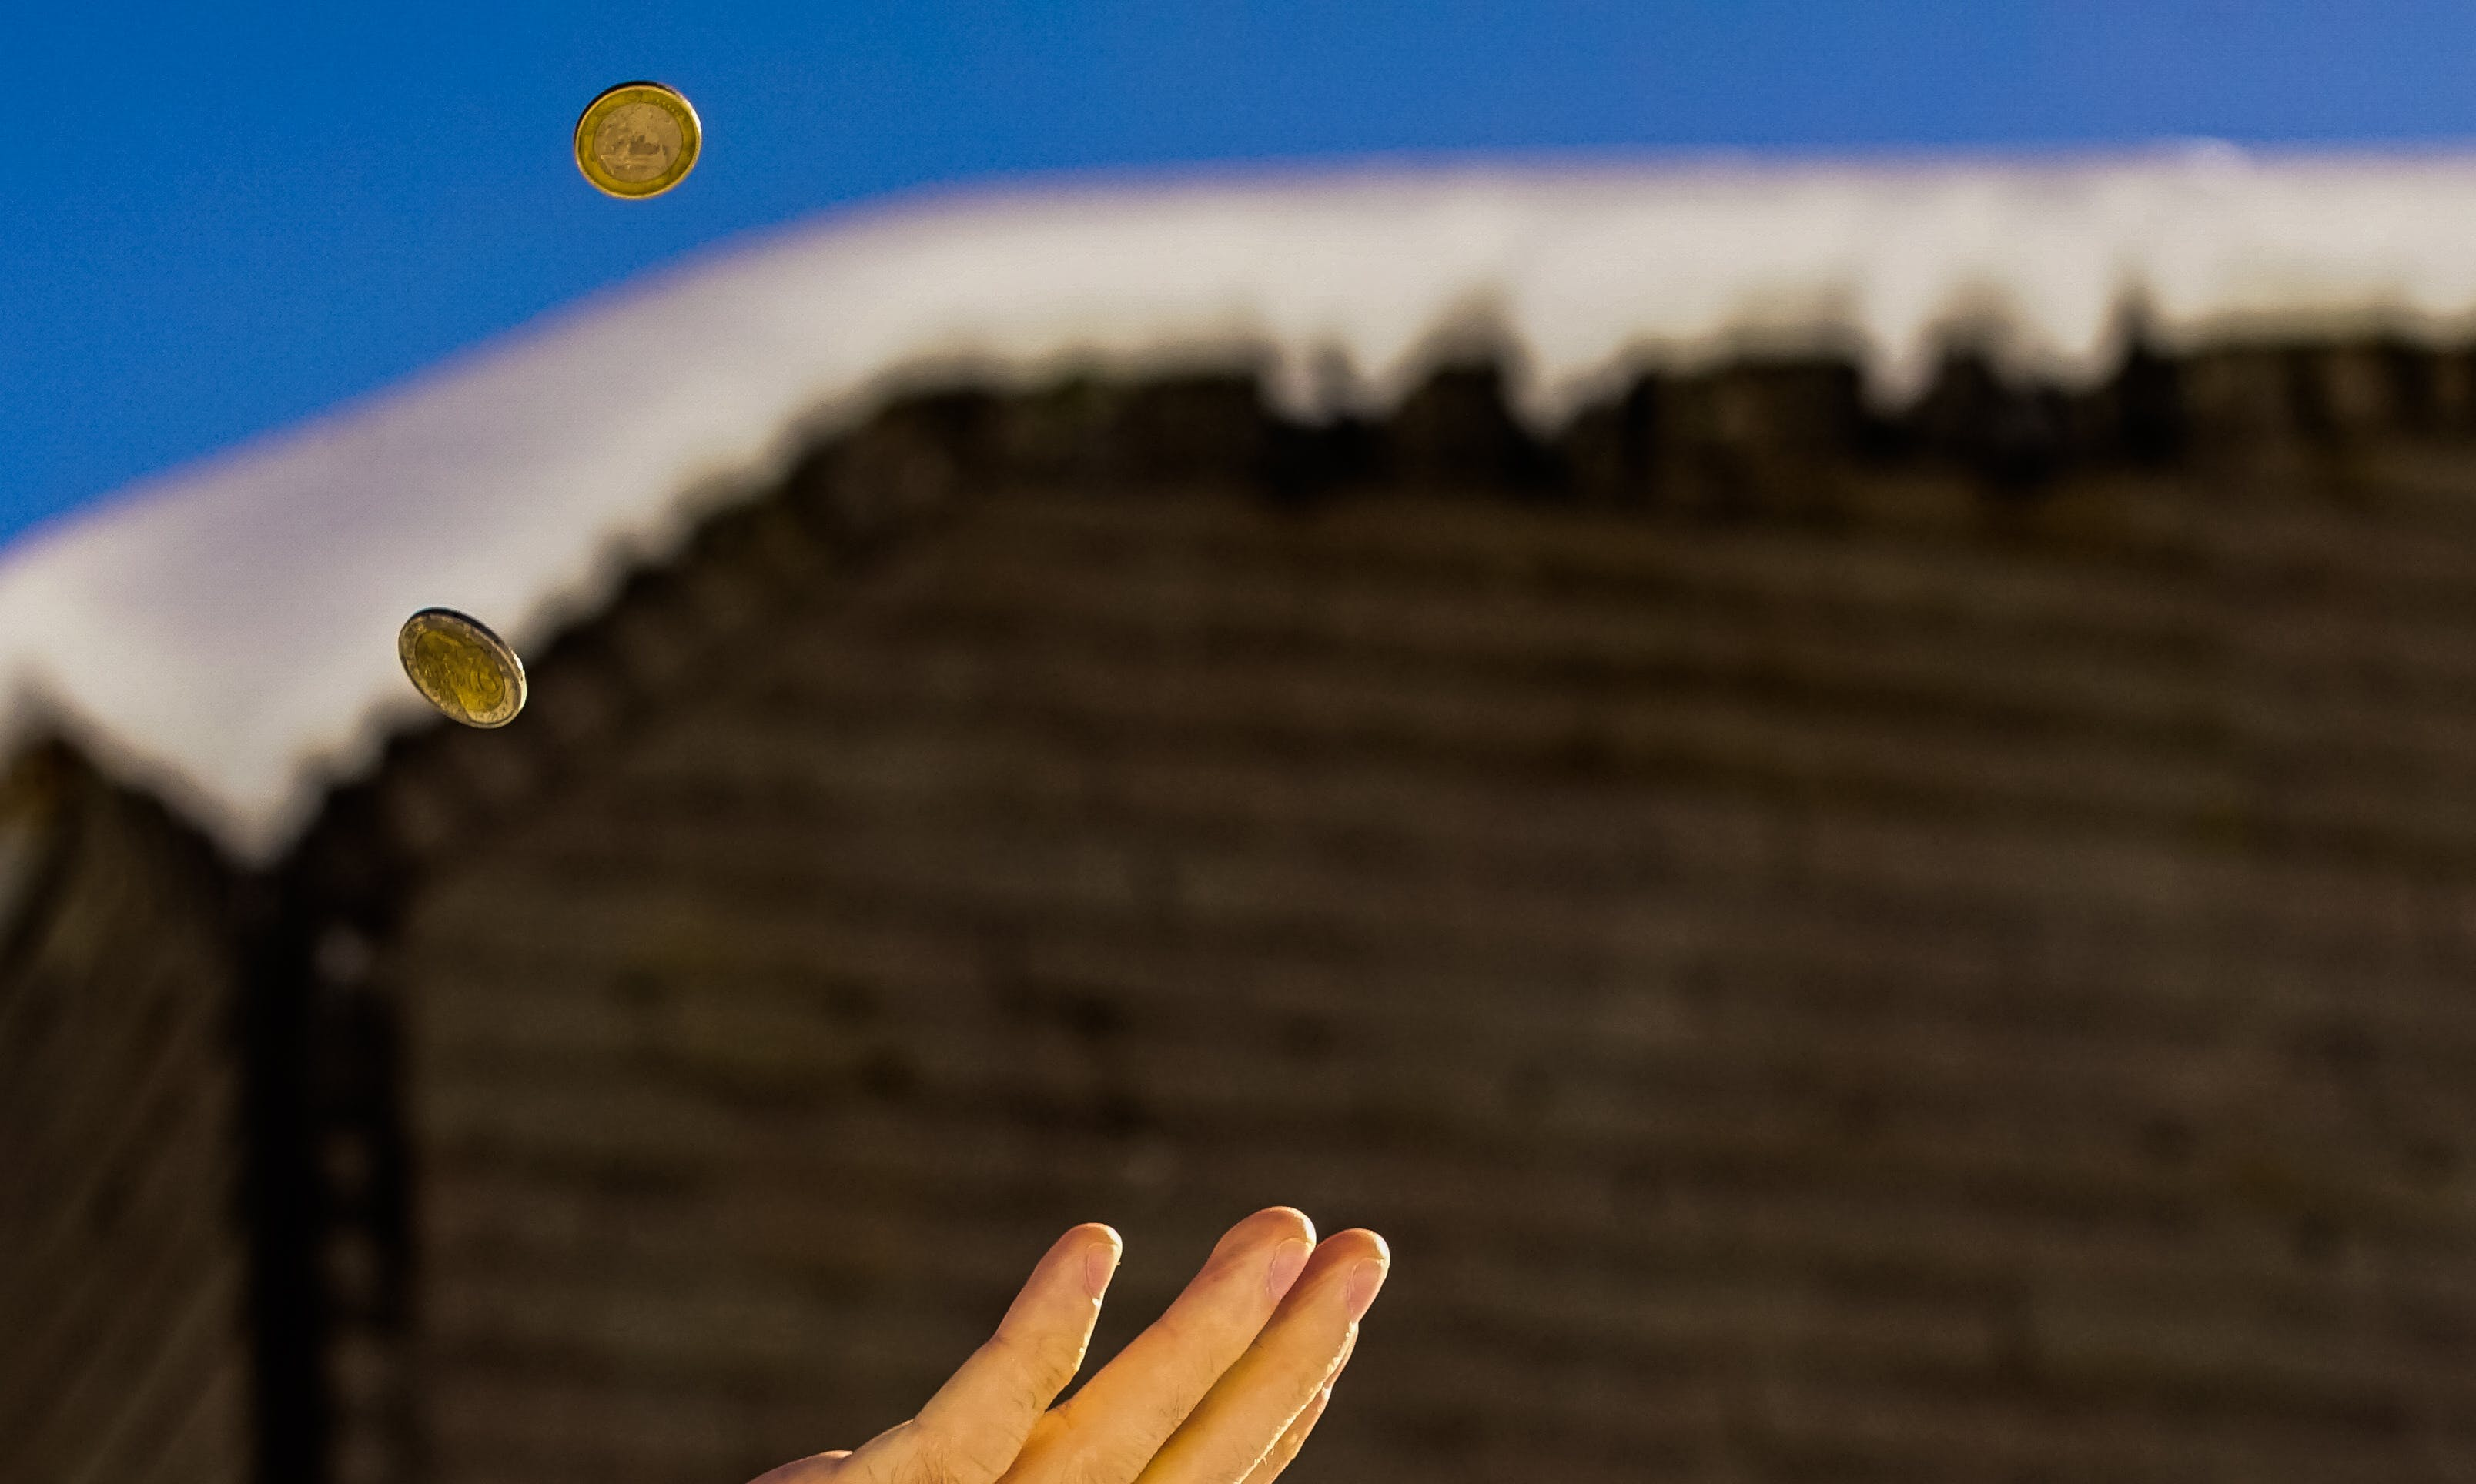 Shallow Focus Photography of Person Catching Two Gold-colored Coins